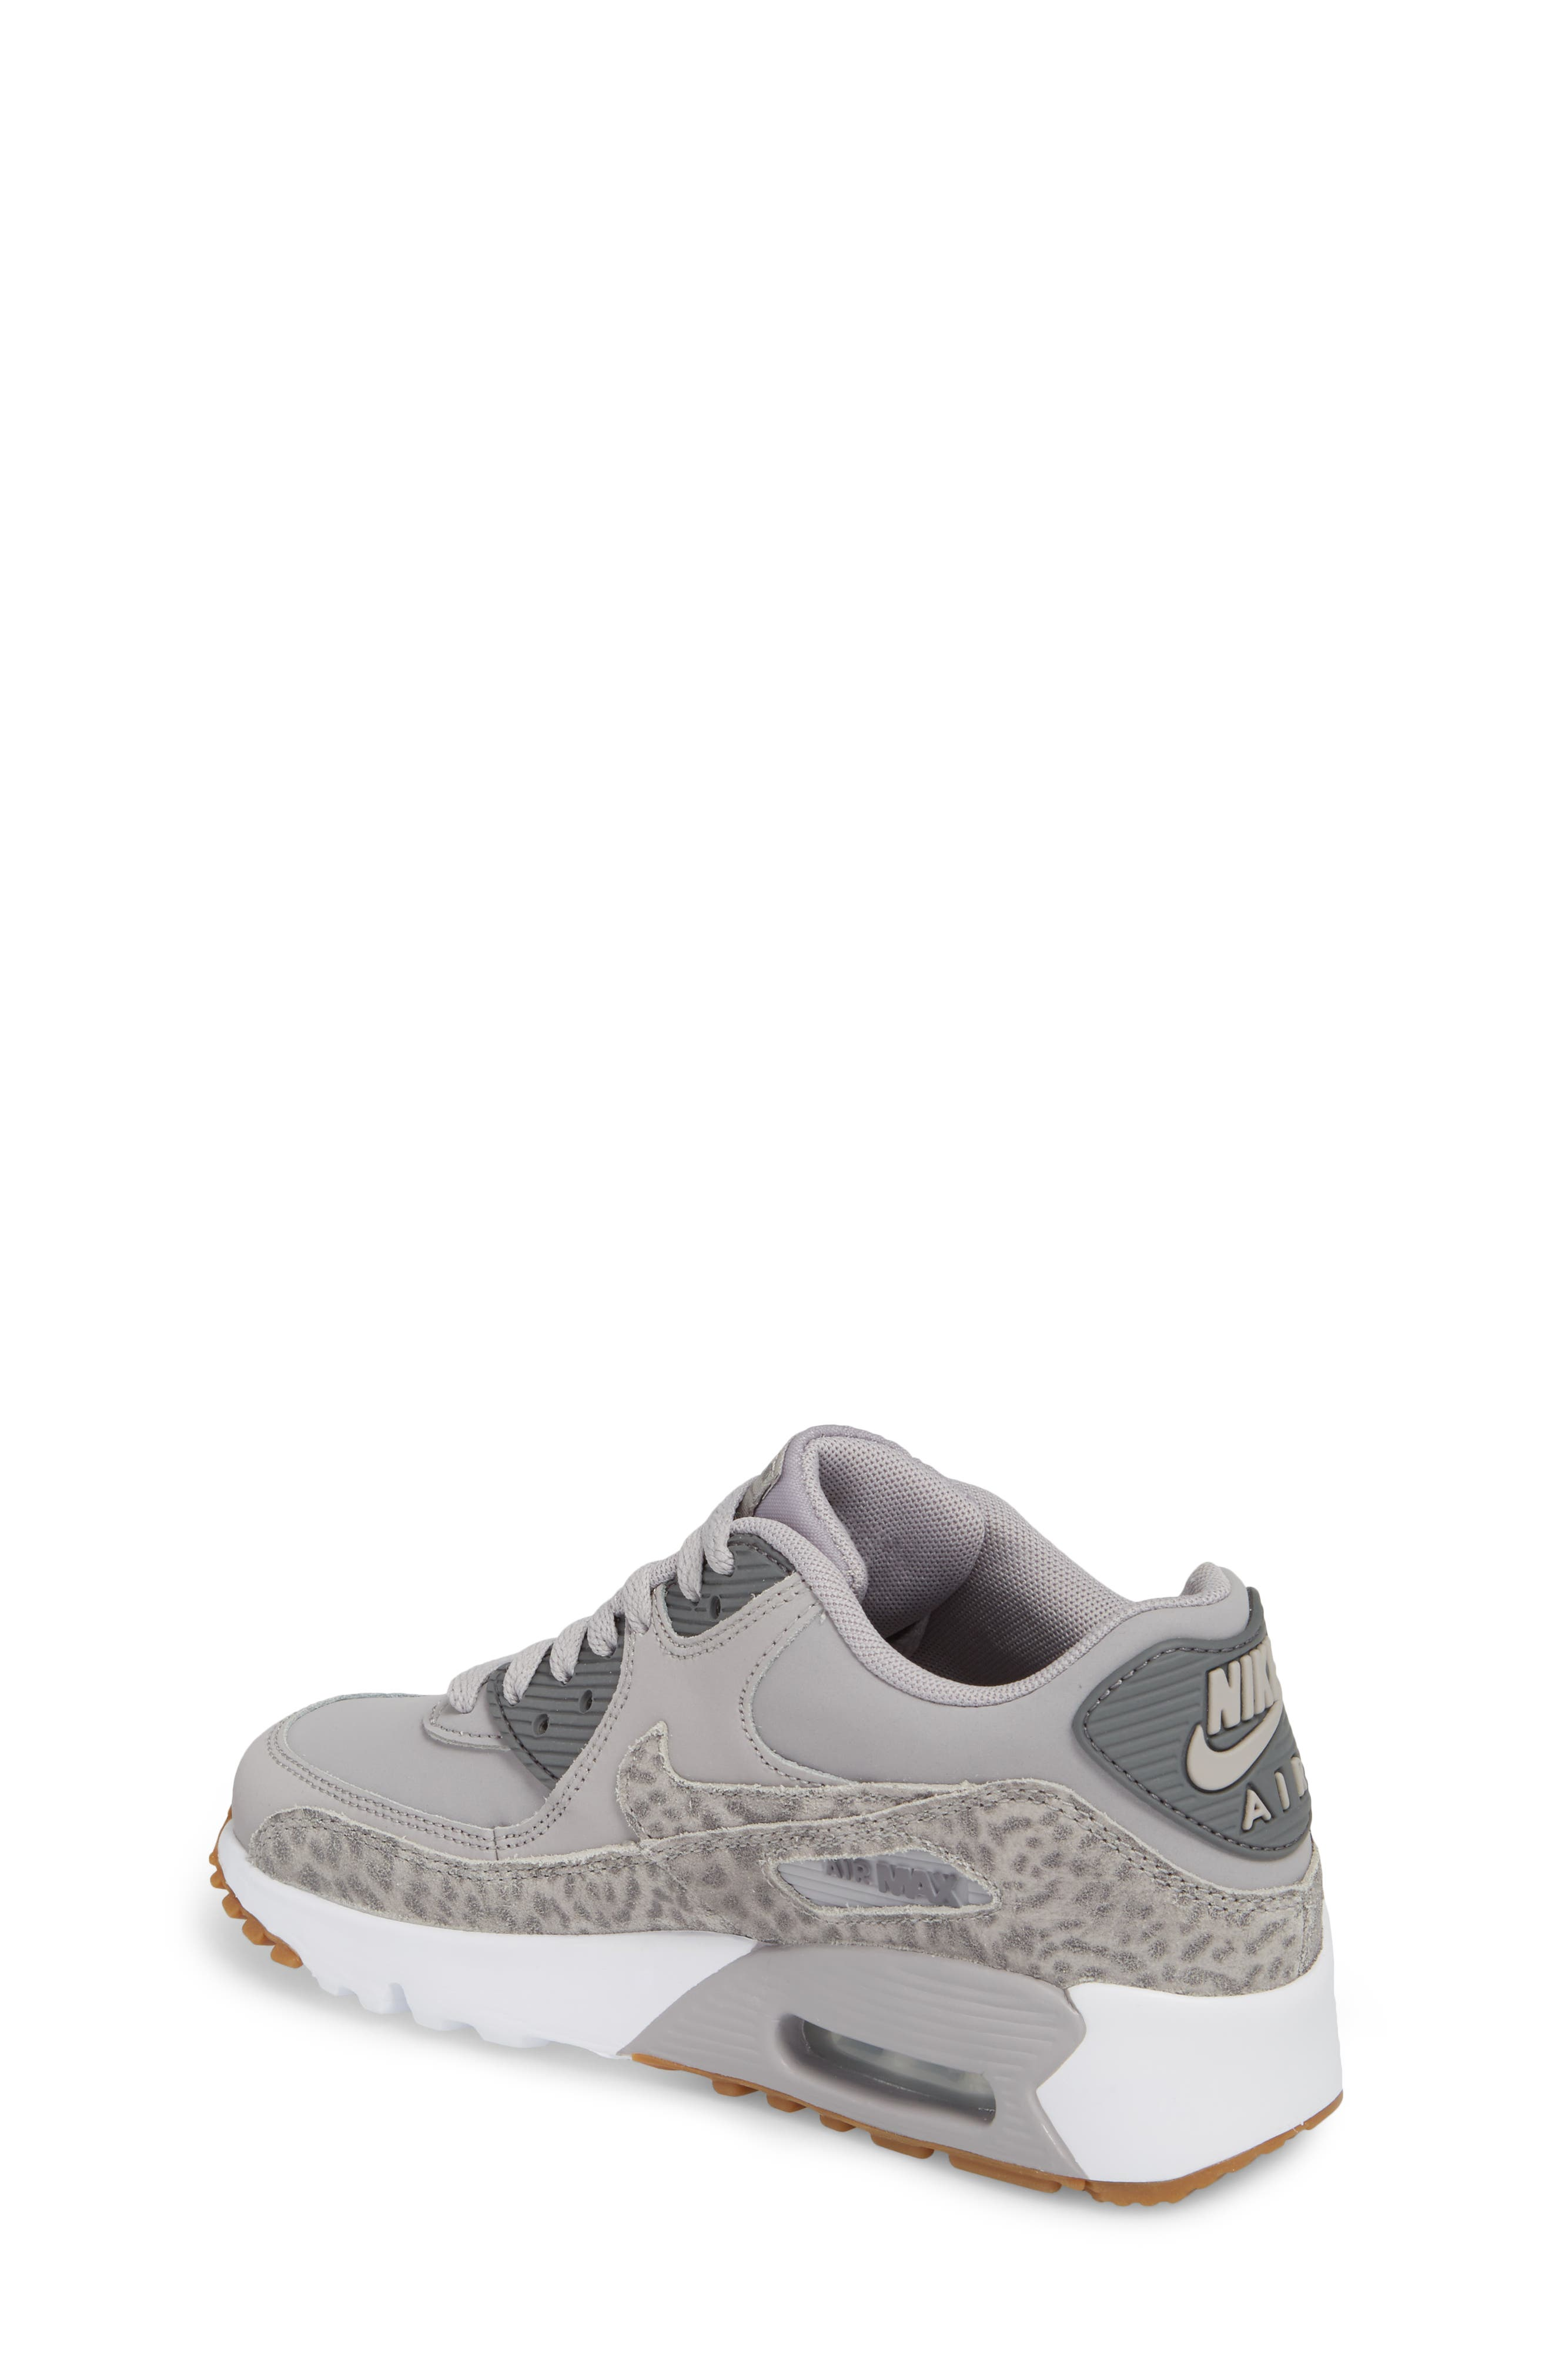 Air Max 90 Leather Sneaker,                             Alternate thumbnail 2, color,                             020